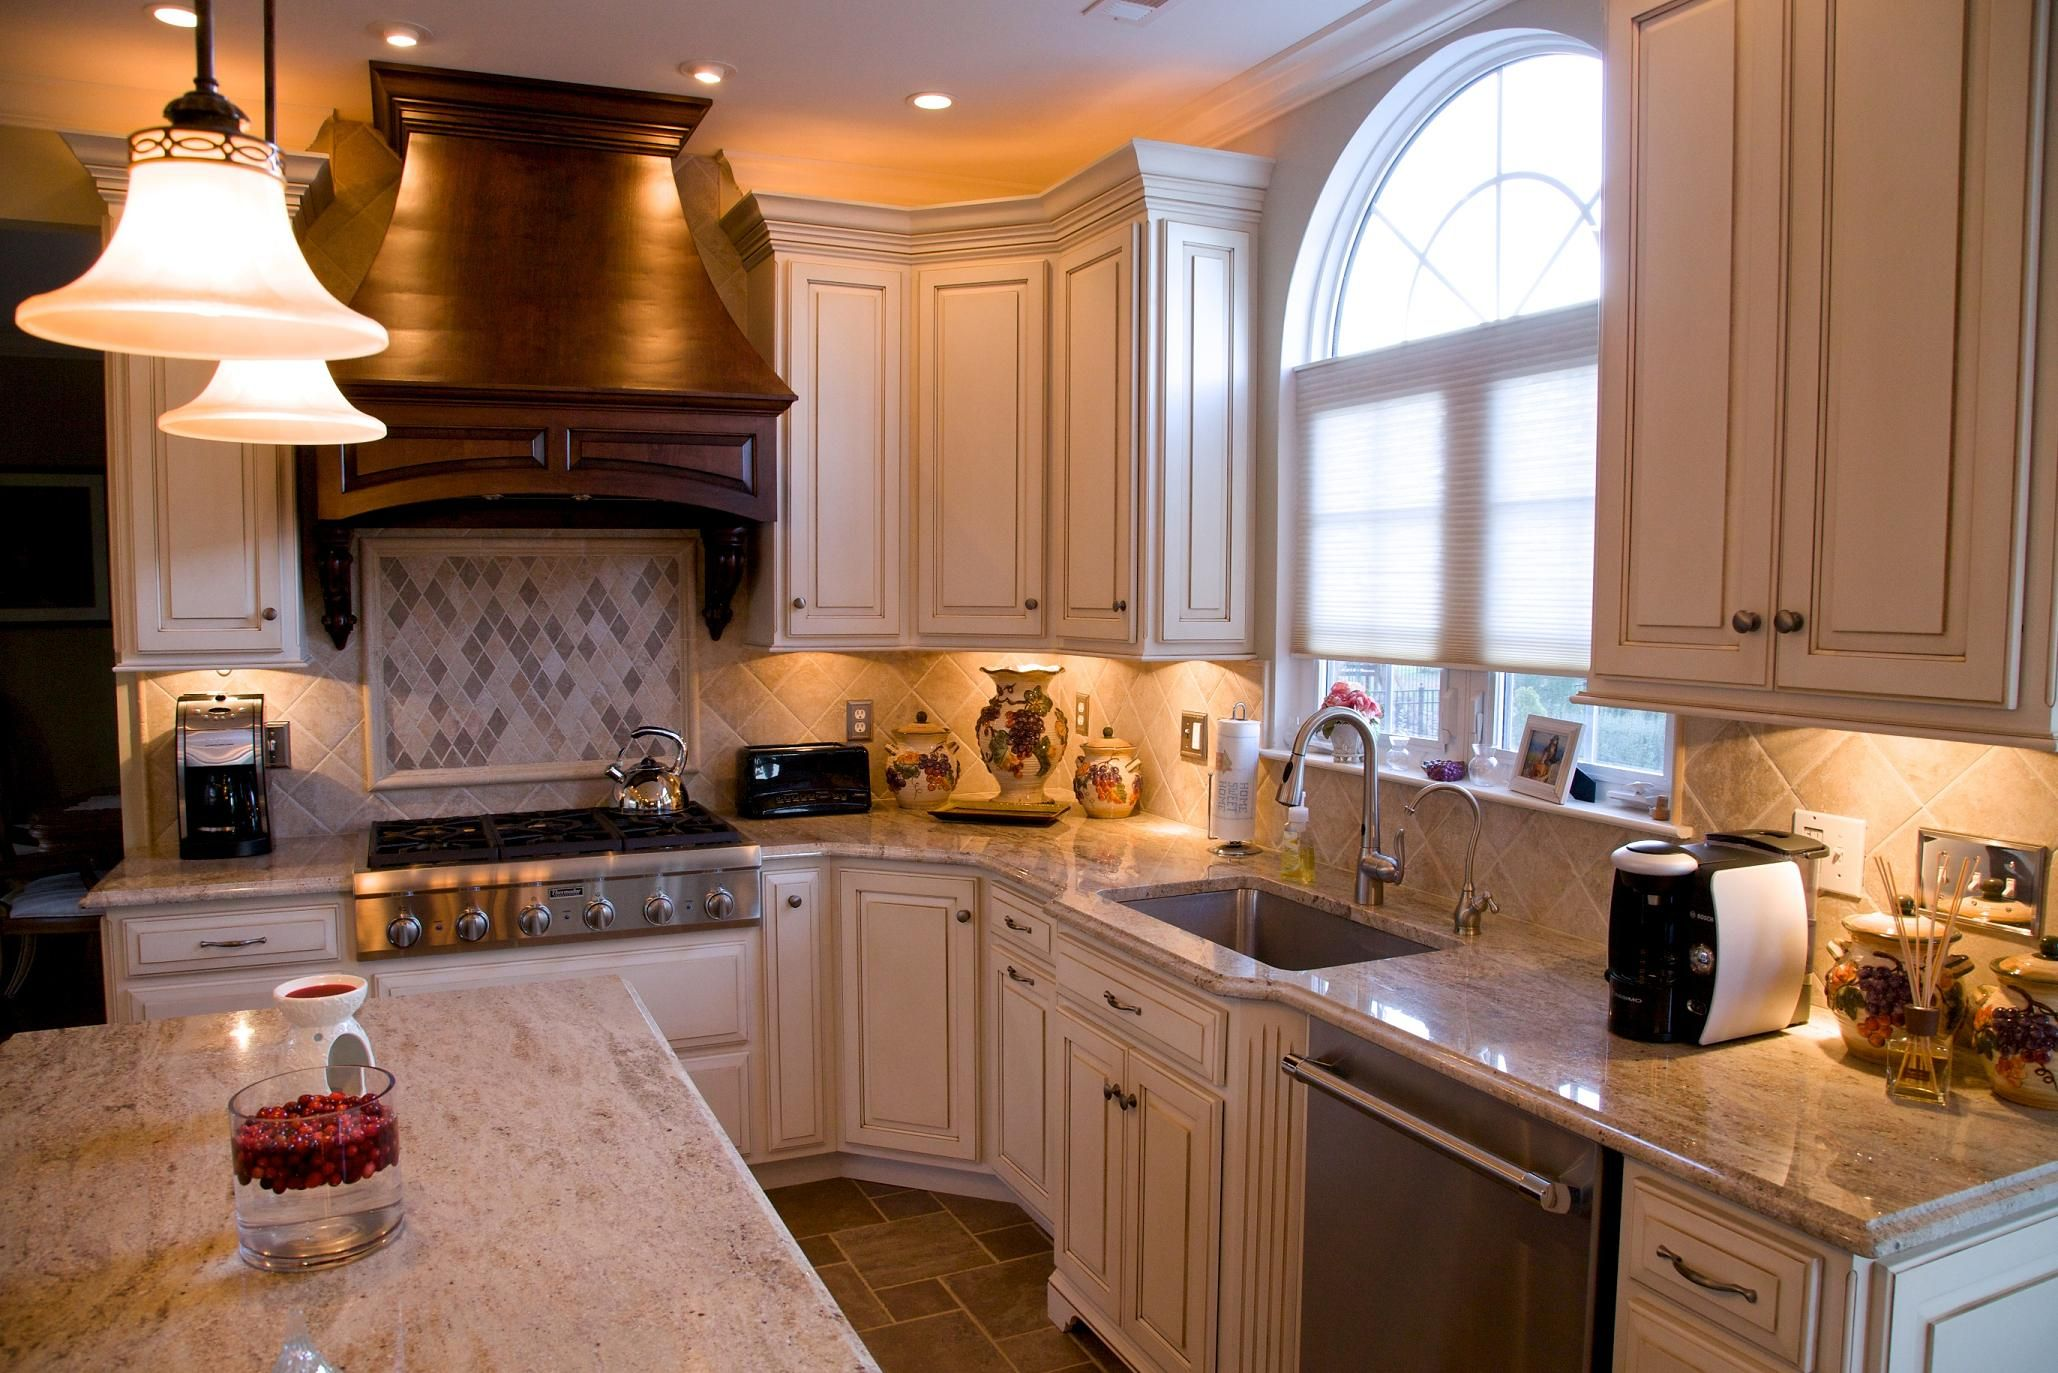 Discount Granite Countertops Nj Kashmir Gold Granite Countertops With Natural Stone